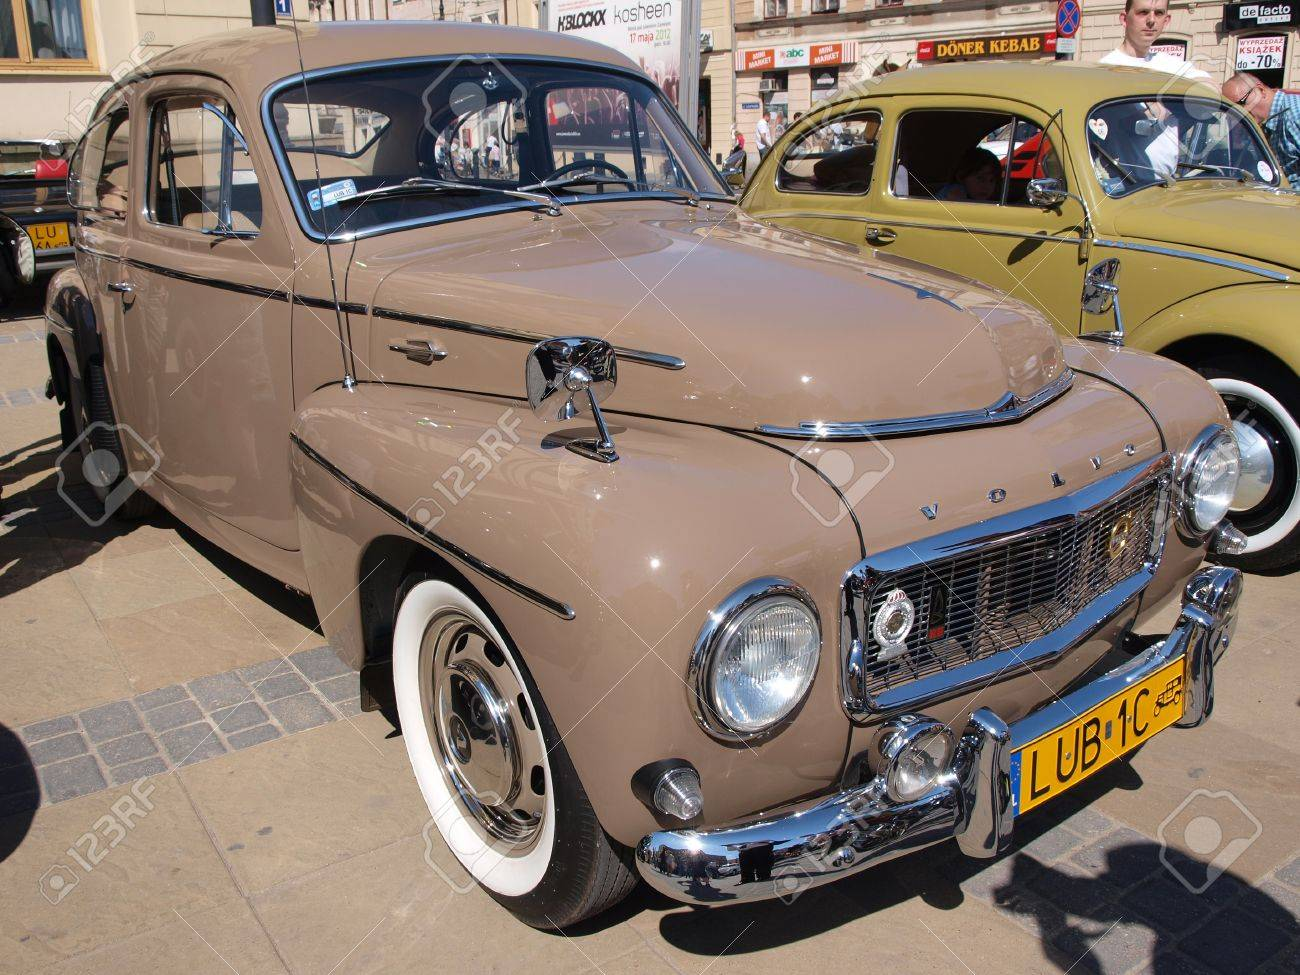 Volvo at the exhibition of old cars, Lublin, Poland, April 28th 2012. Stock Photo - 13436821